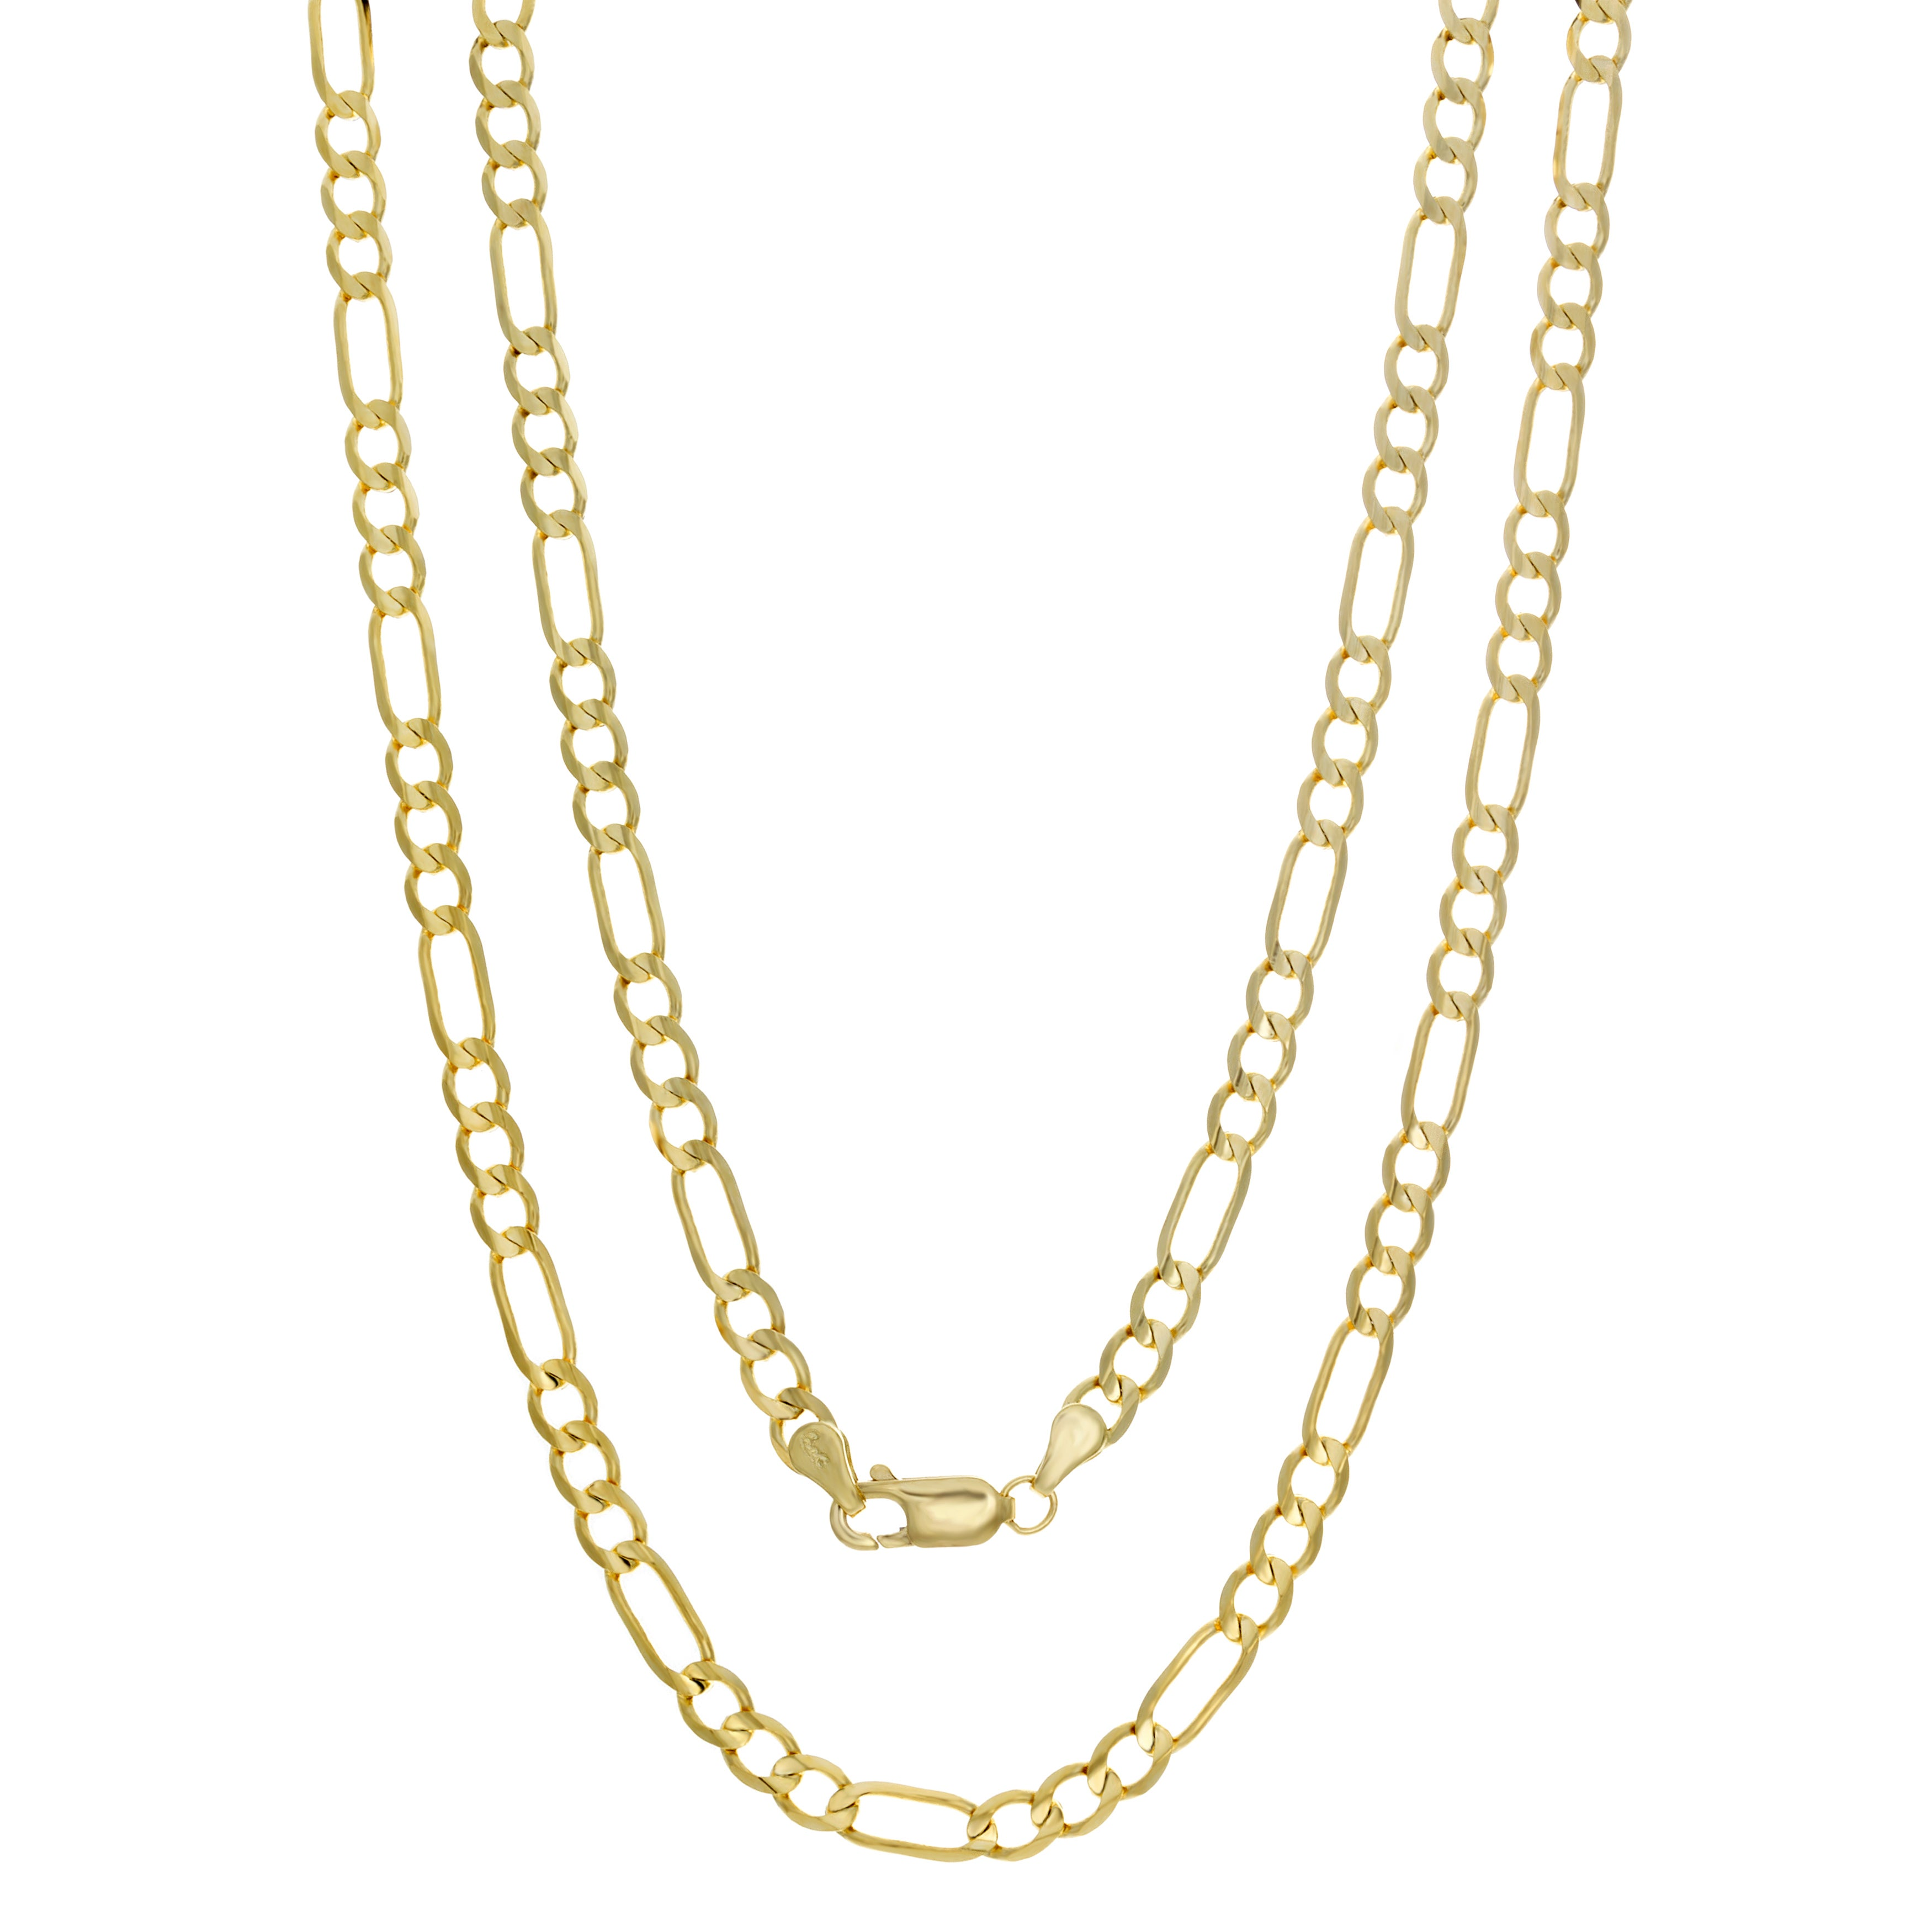 Shop sterling essentials 14k italian gold 4 mm concave figaro chain shop sterling essentials 14k italian gold 4 mm concave figaro chain 16 30 inches yellow on sale free shipping today overstock 10952396 aloadofball Image collections